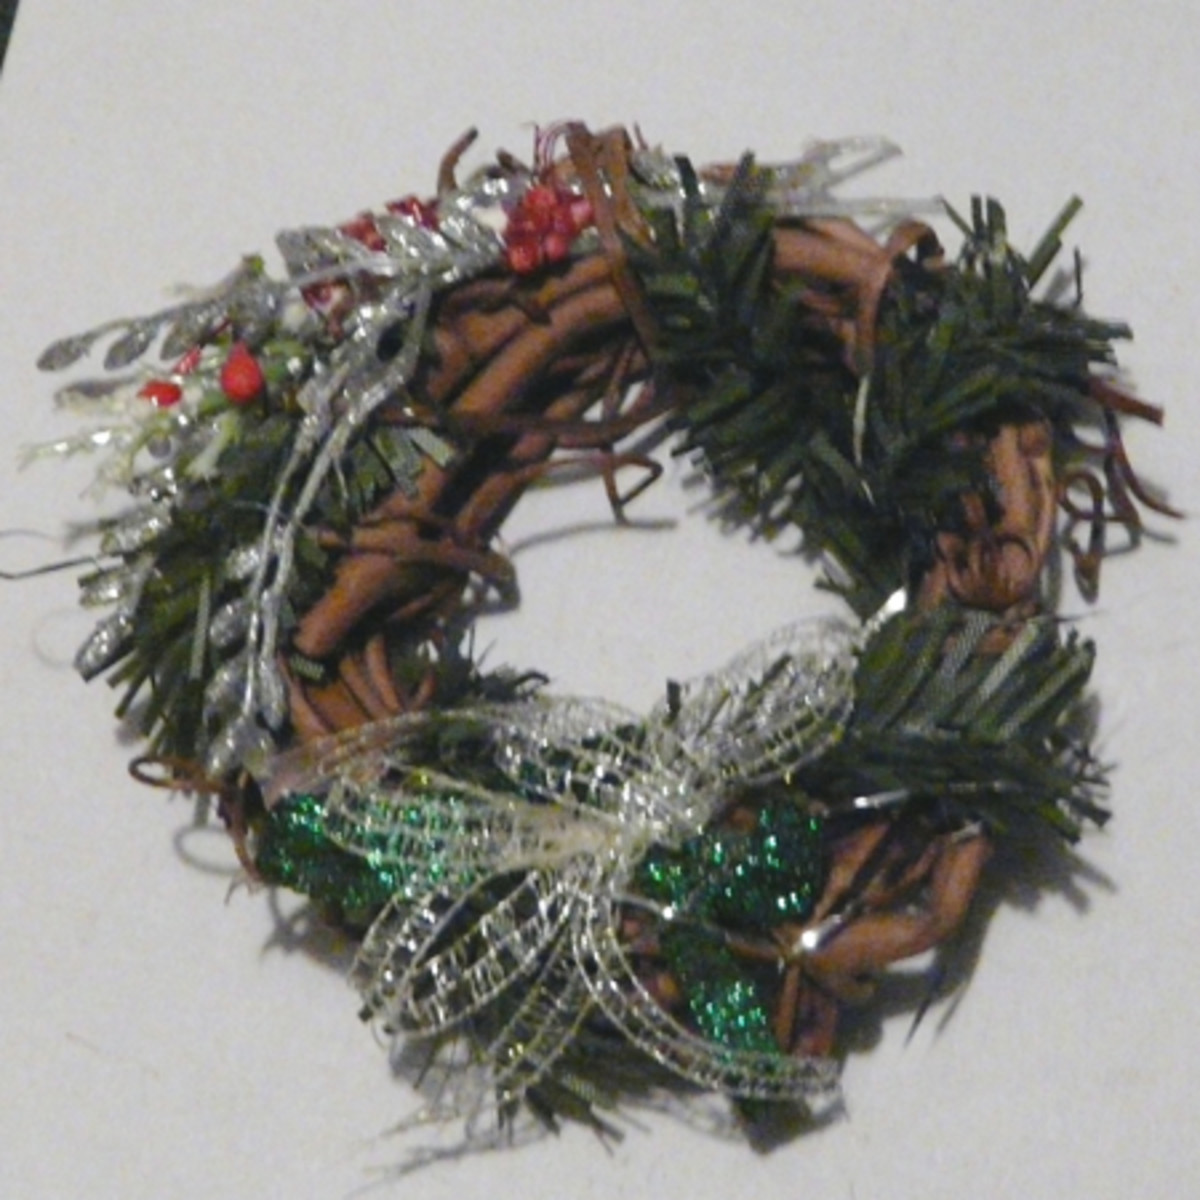 Mini Wreath Ornament with greenery